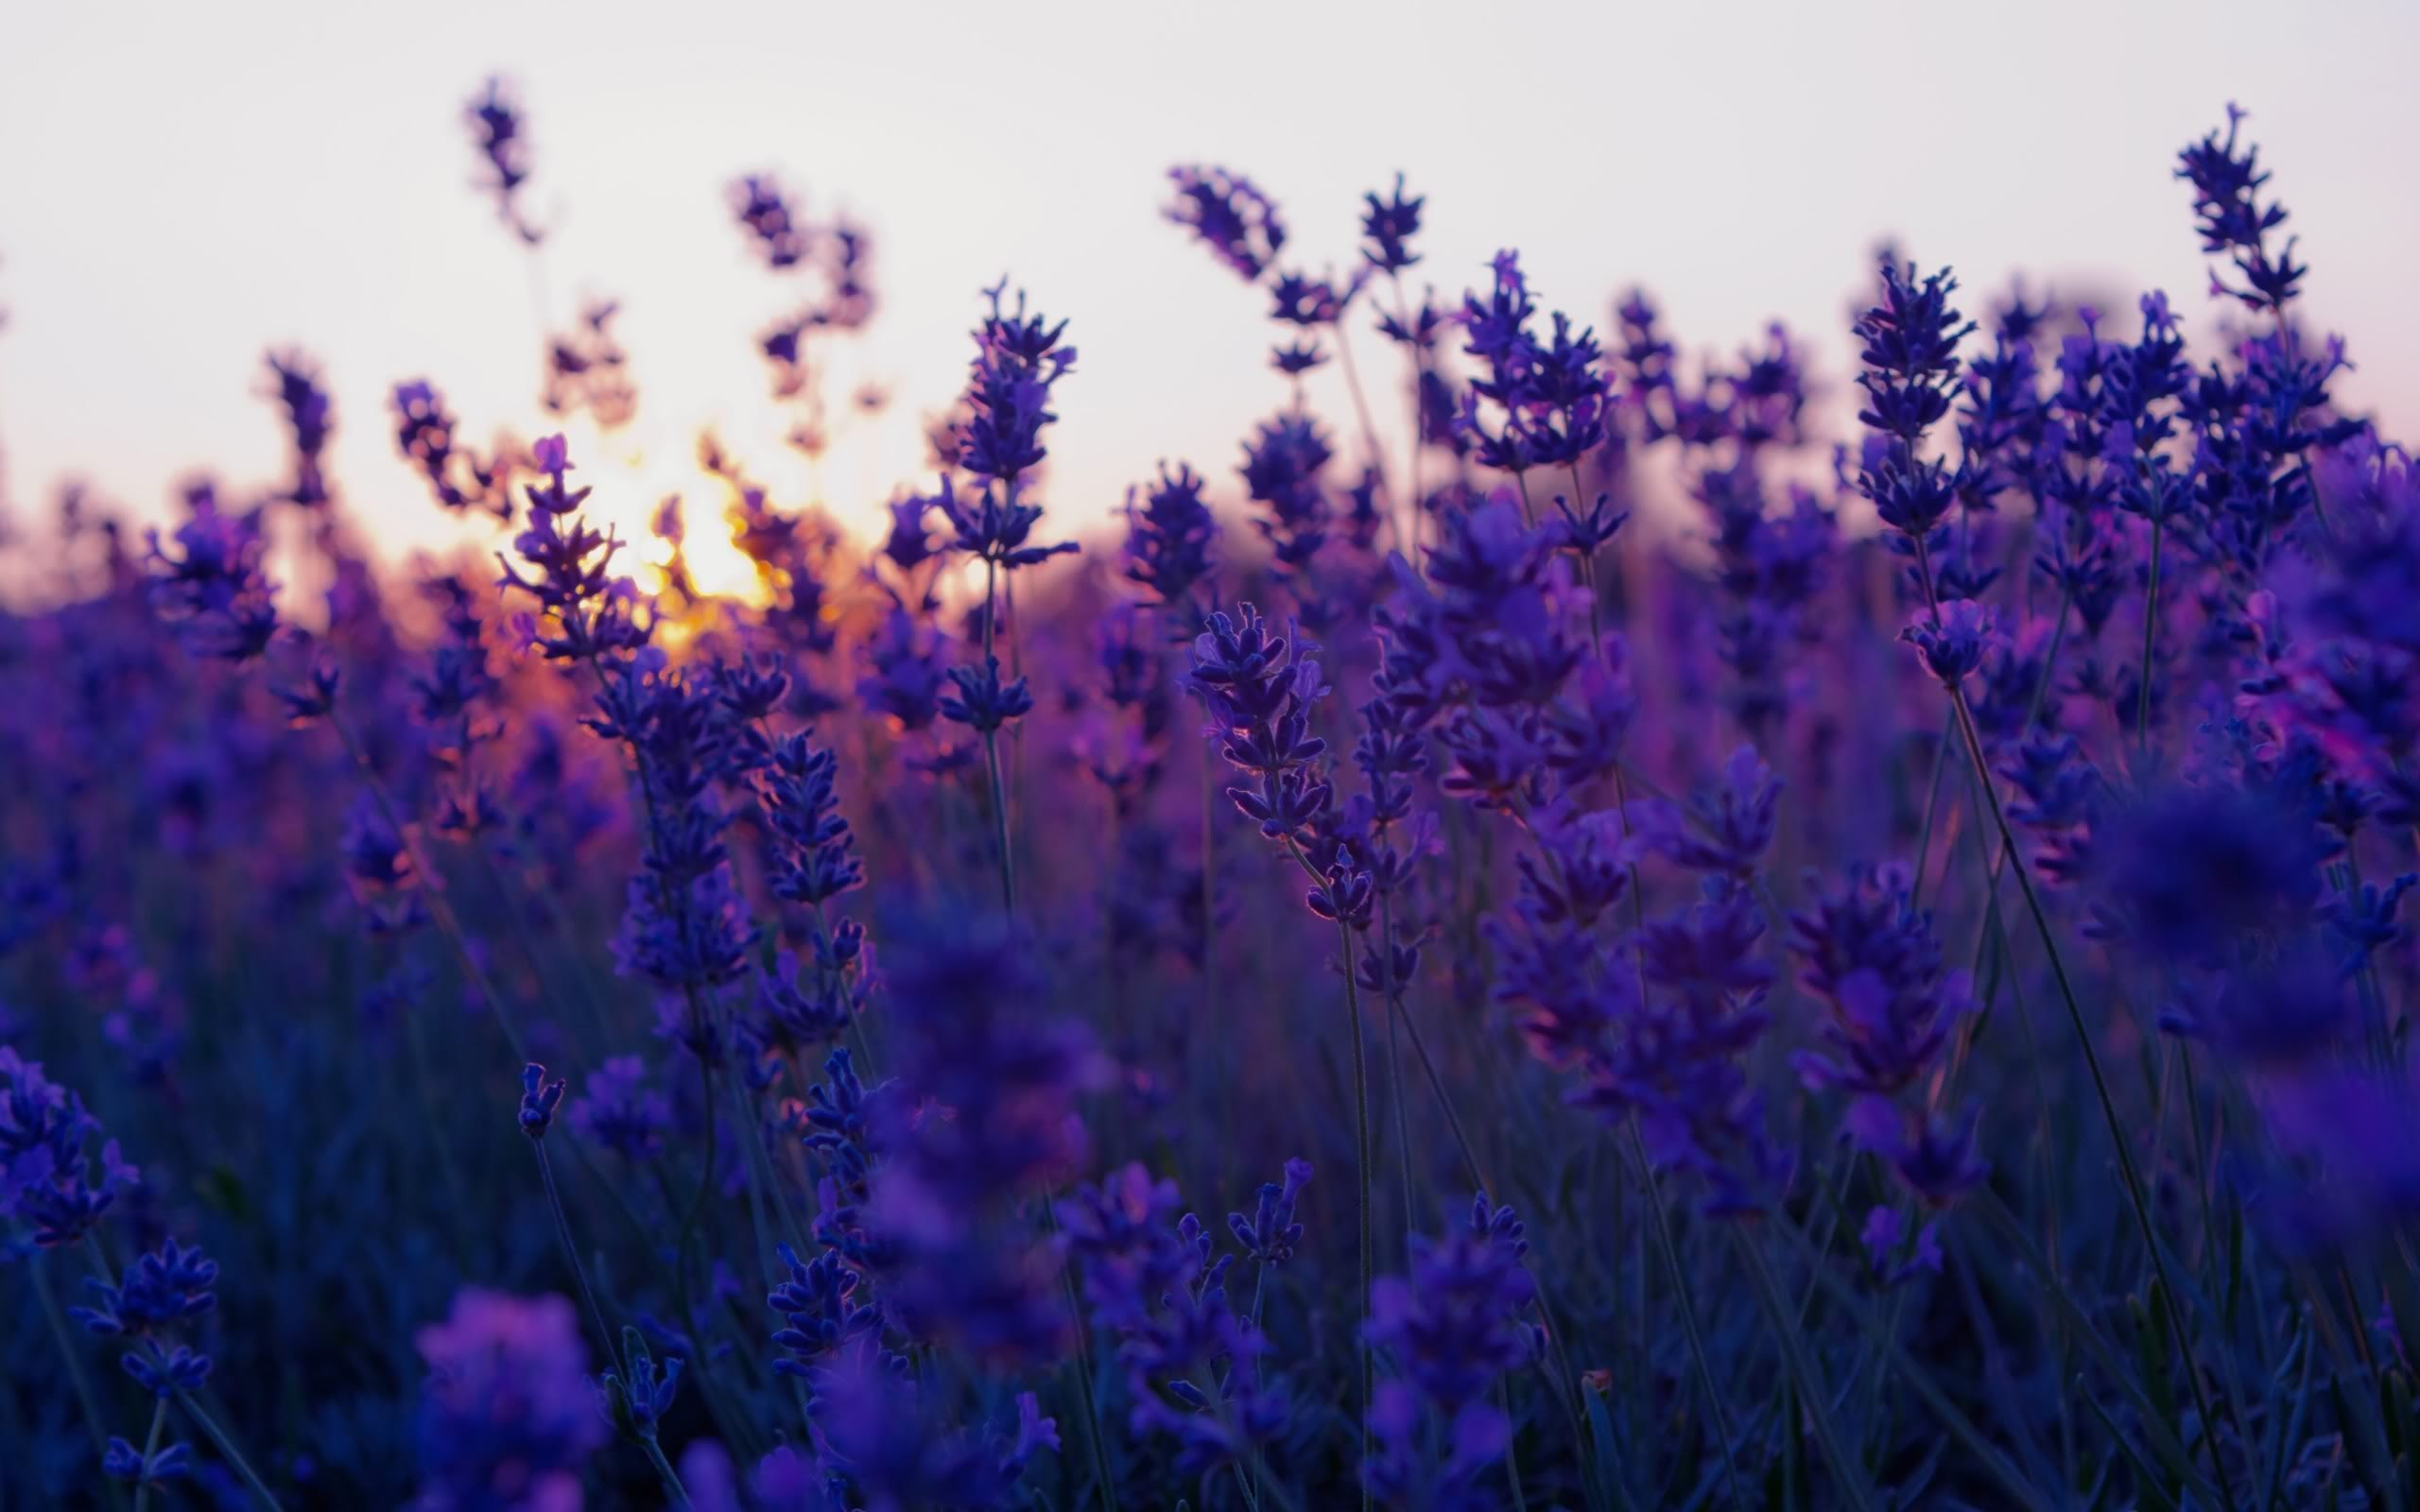 Beautiful purple flowers wallpaper images beautiful purple flowers wallpaper images izmirmasajfo